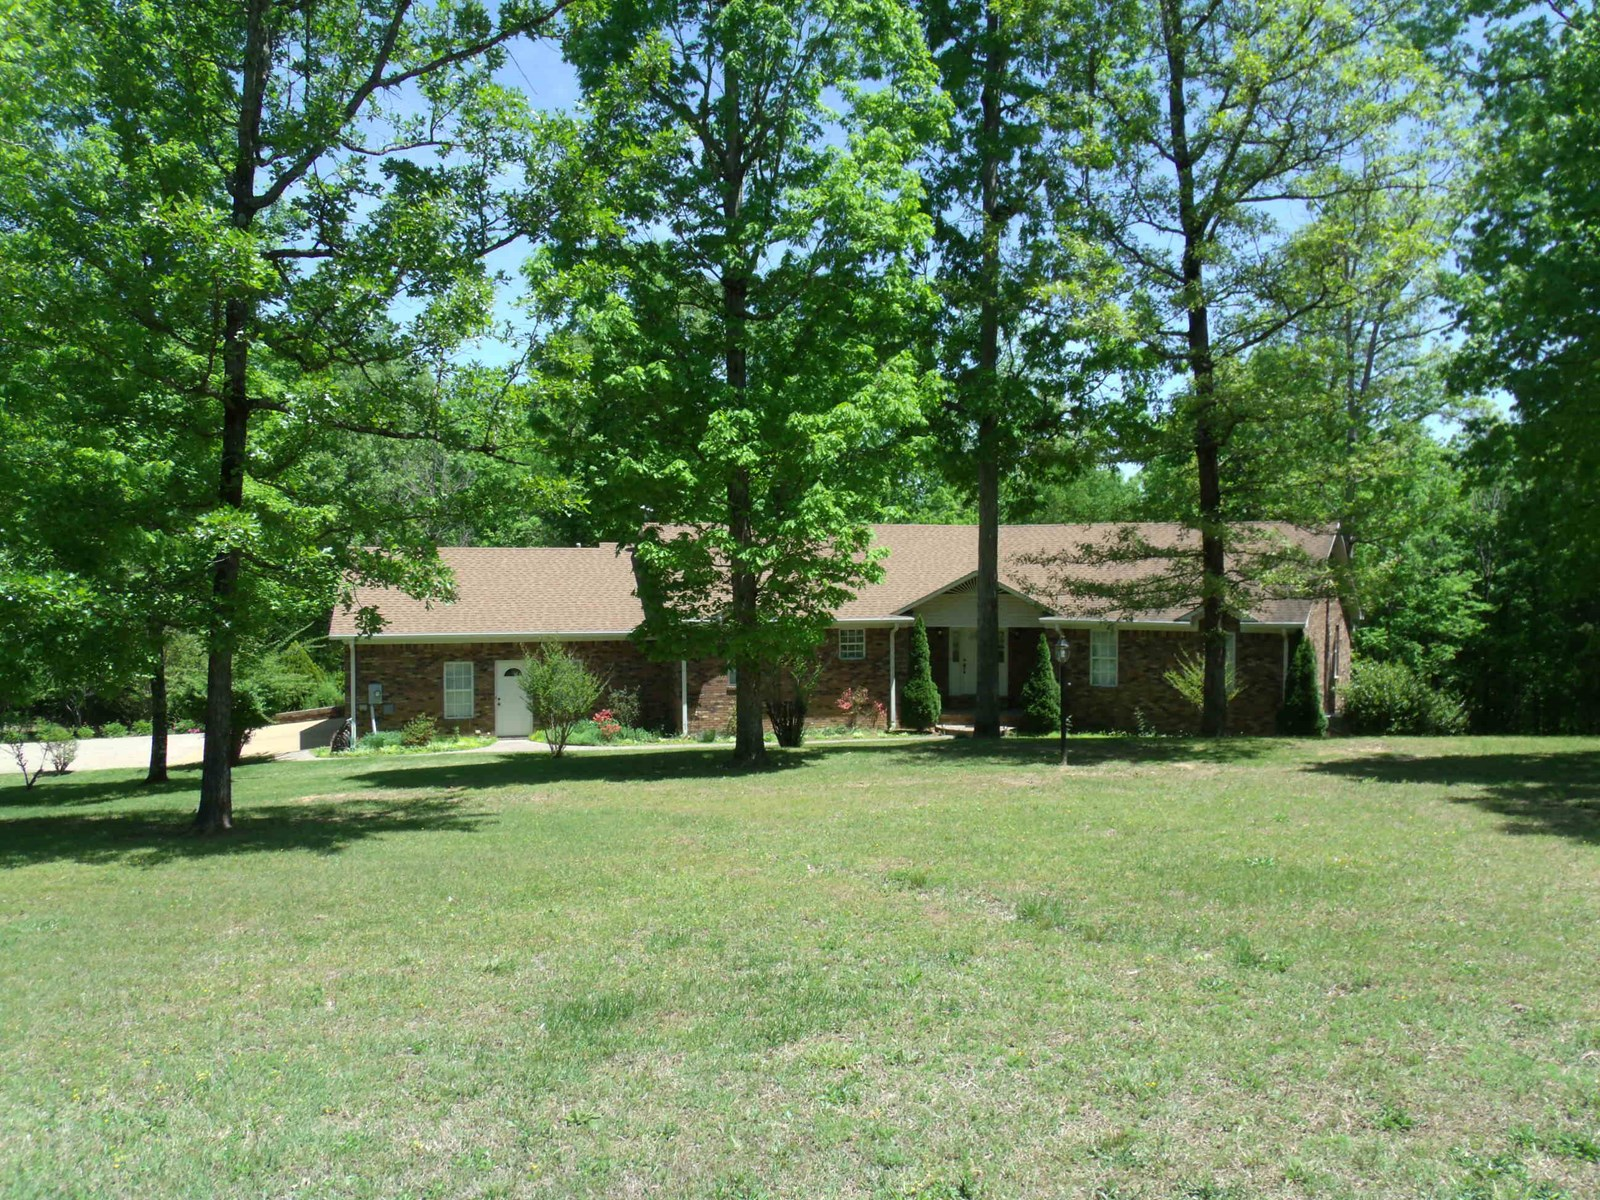 5 BEDROOM BRICK HOME WITH BASEMENT & SAFE ROOM IN TN